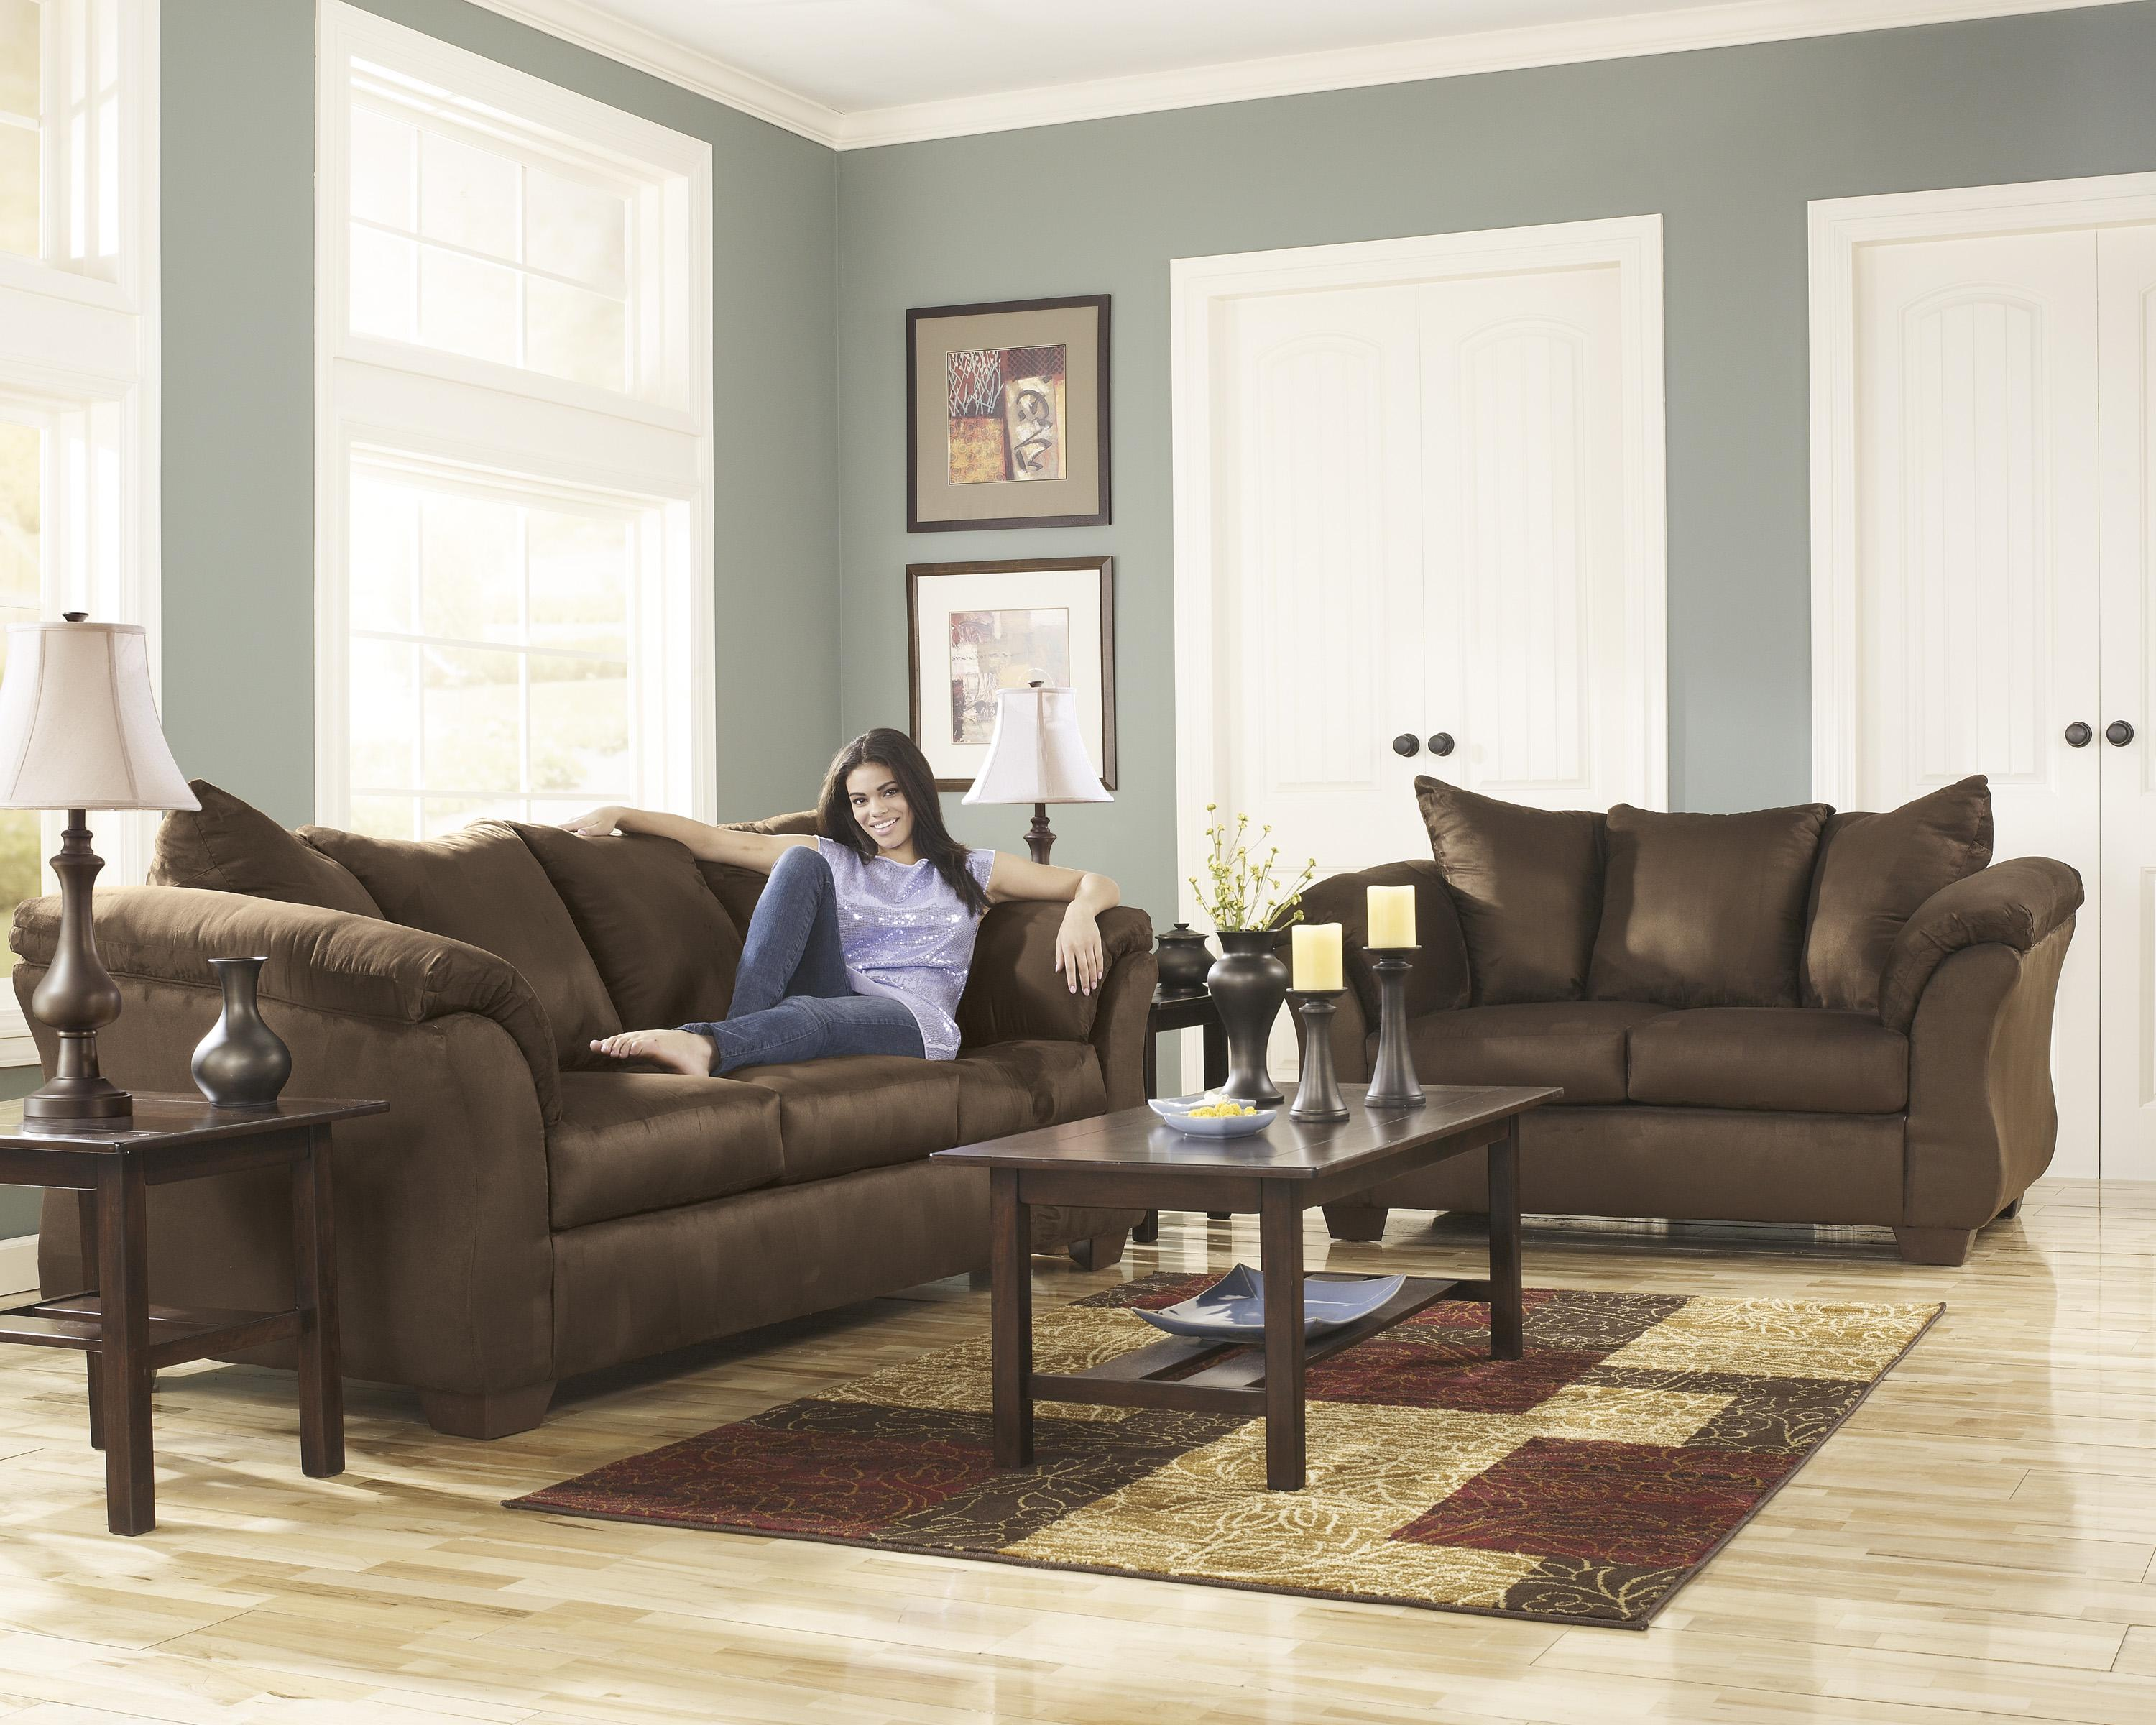 Skyline Rent to Own Products. Aaron39s Rent Own Furniture    Descargas Mundiales com